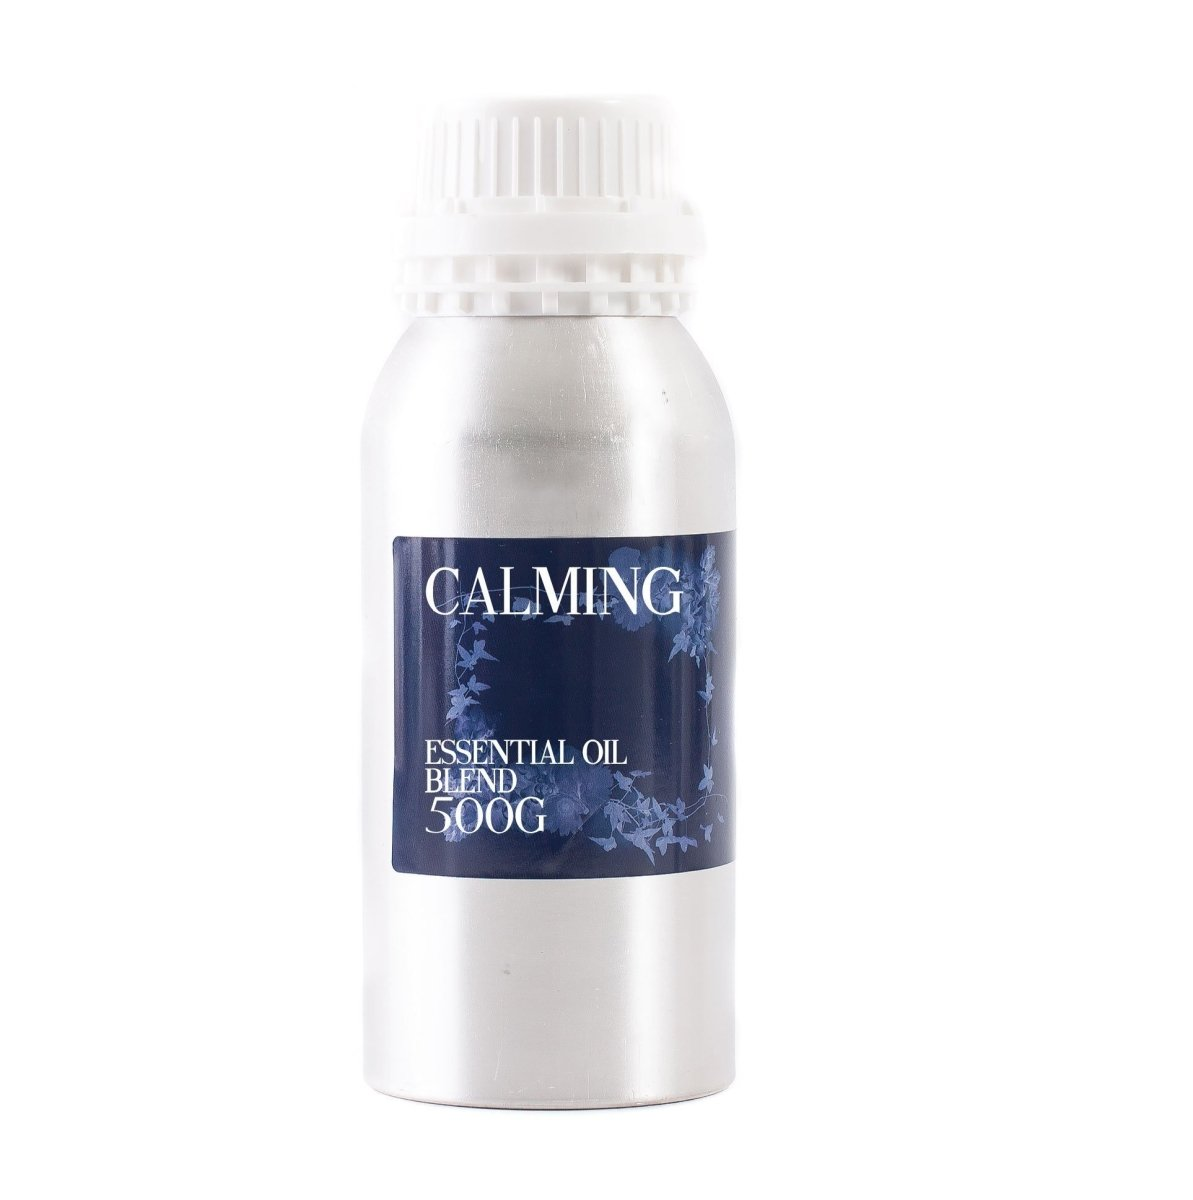 Calming - Essential Oil Blends - Mystic Moments UK